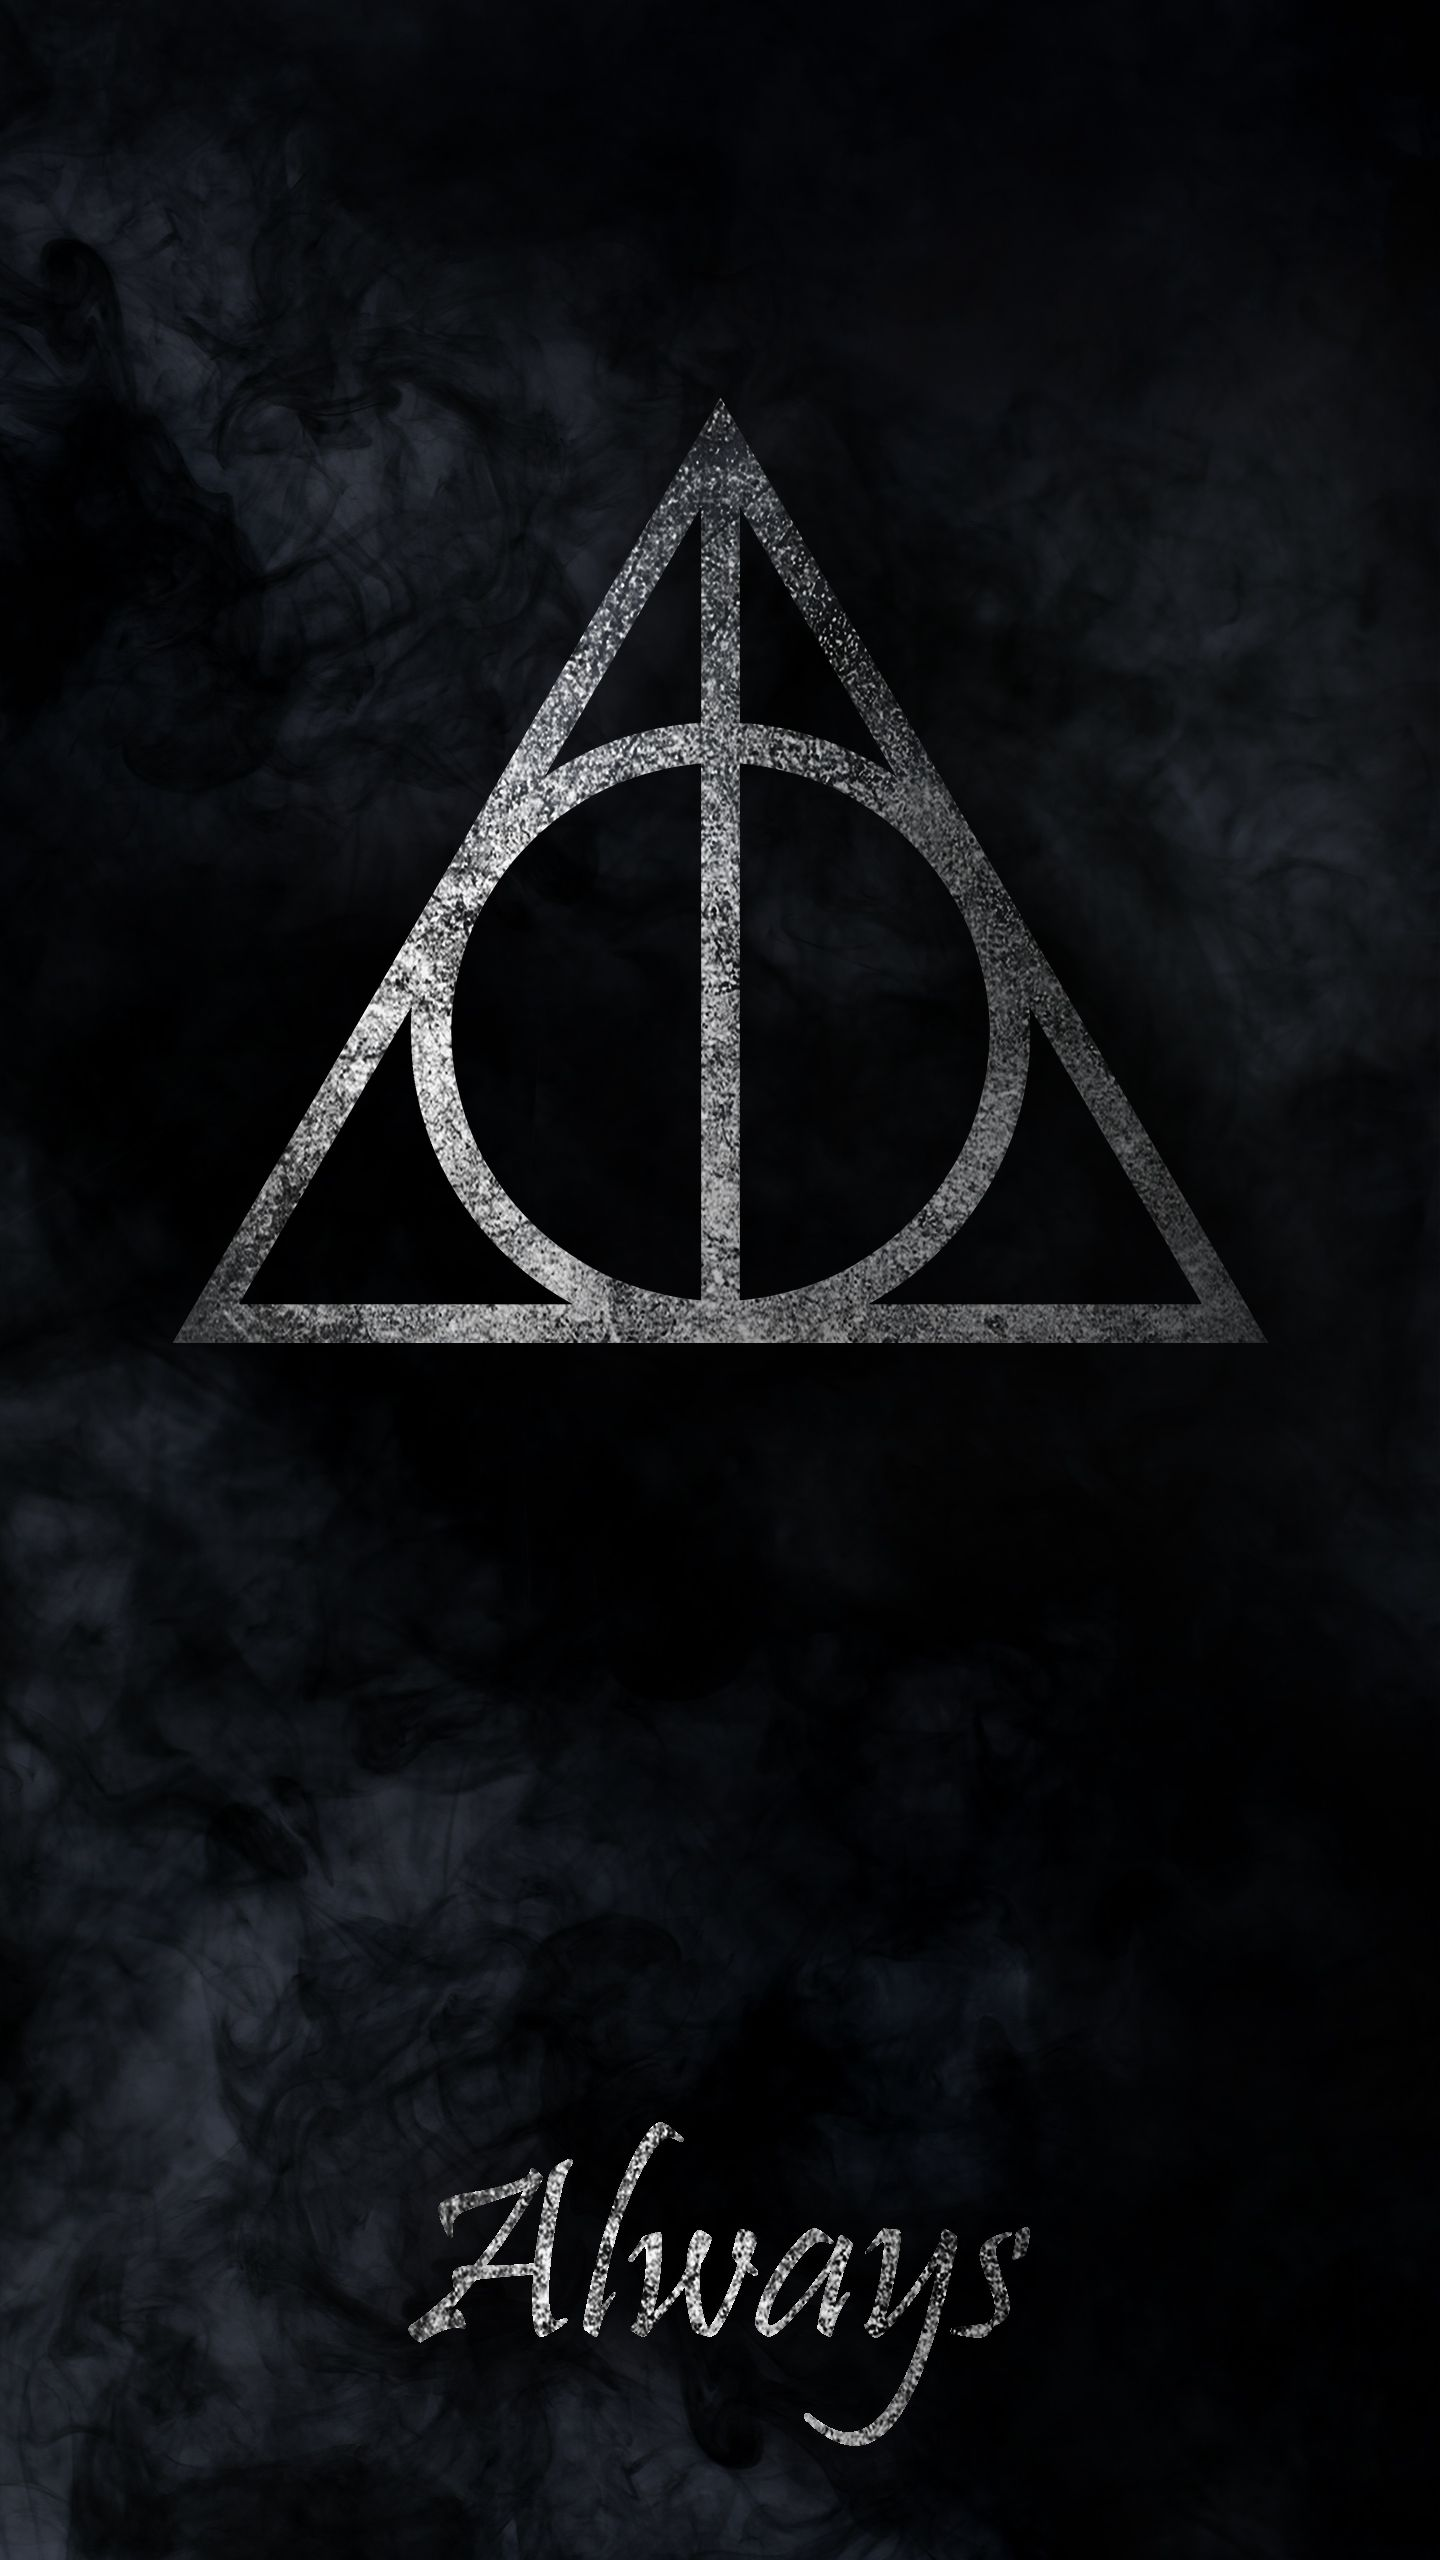 1440x2560 Harry Potter and the Deathly Hallows phone wallpaper | Hp in 2019 ...